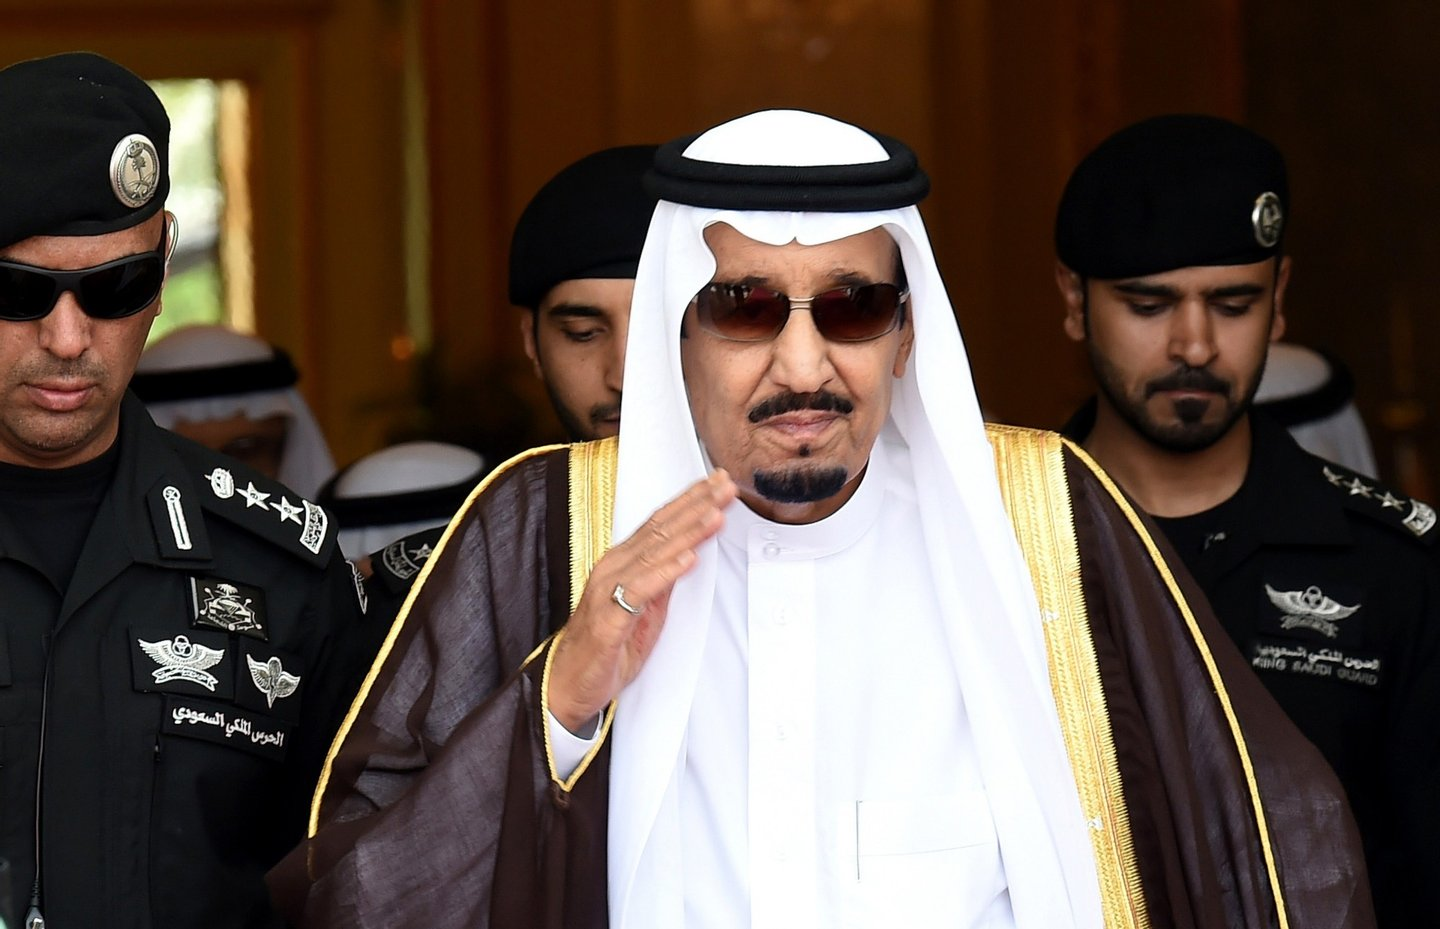 Saudi King Salman bin Abdulaziz (C) walks out to receive Sheikh Mohammed Bin Rashid al-Maktoum, ruler of Dubai (unseen) upon his arrival to attend the Gulf Cooperation Council (GCC) summit in Riyadh on May 5, 2015. AFP PHOTO / FAYEZ NURELDINE (Photo credit should read FAYEZ NURELDINE/AFP/Getty Images)